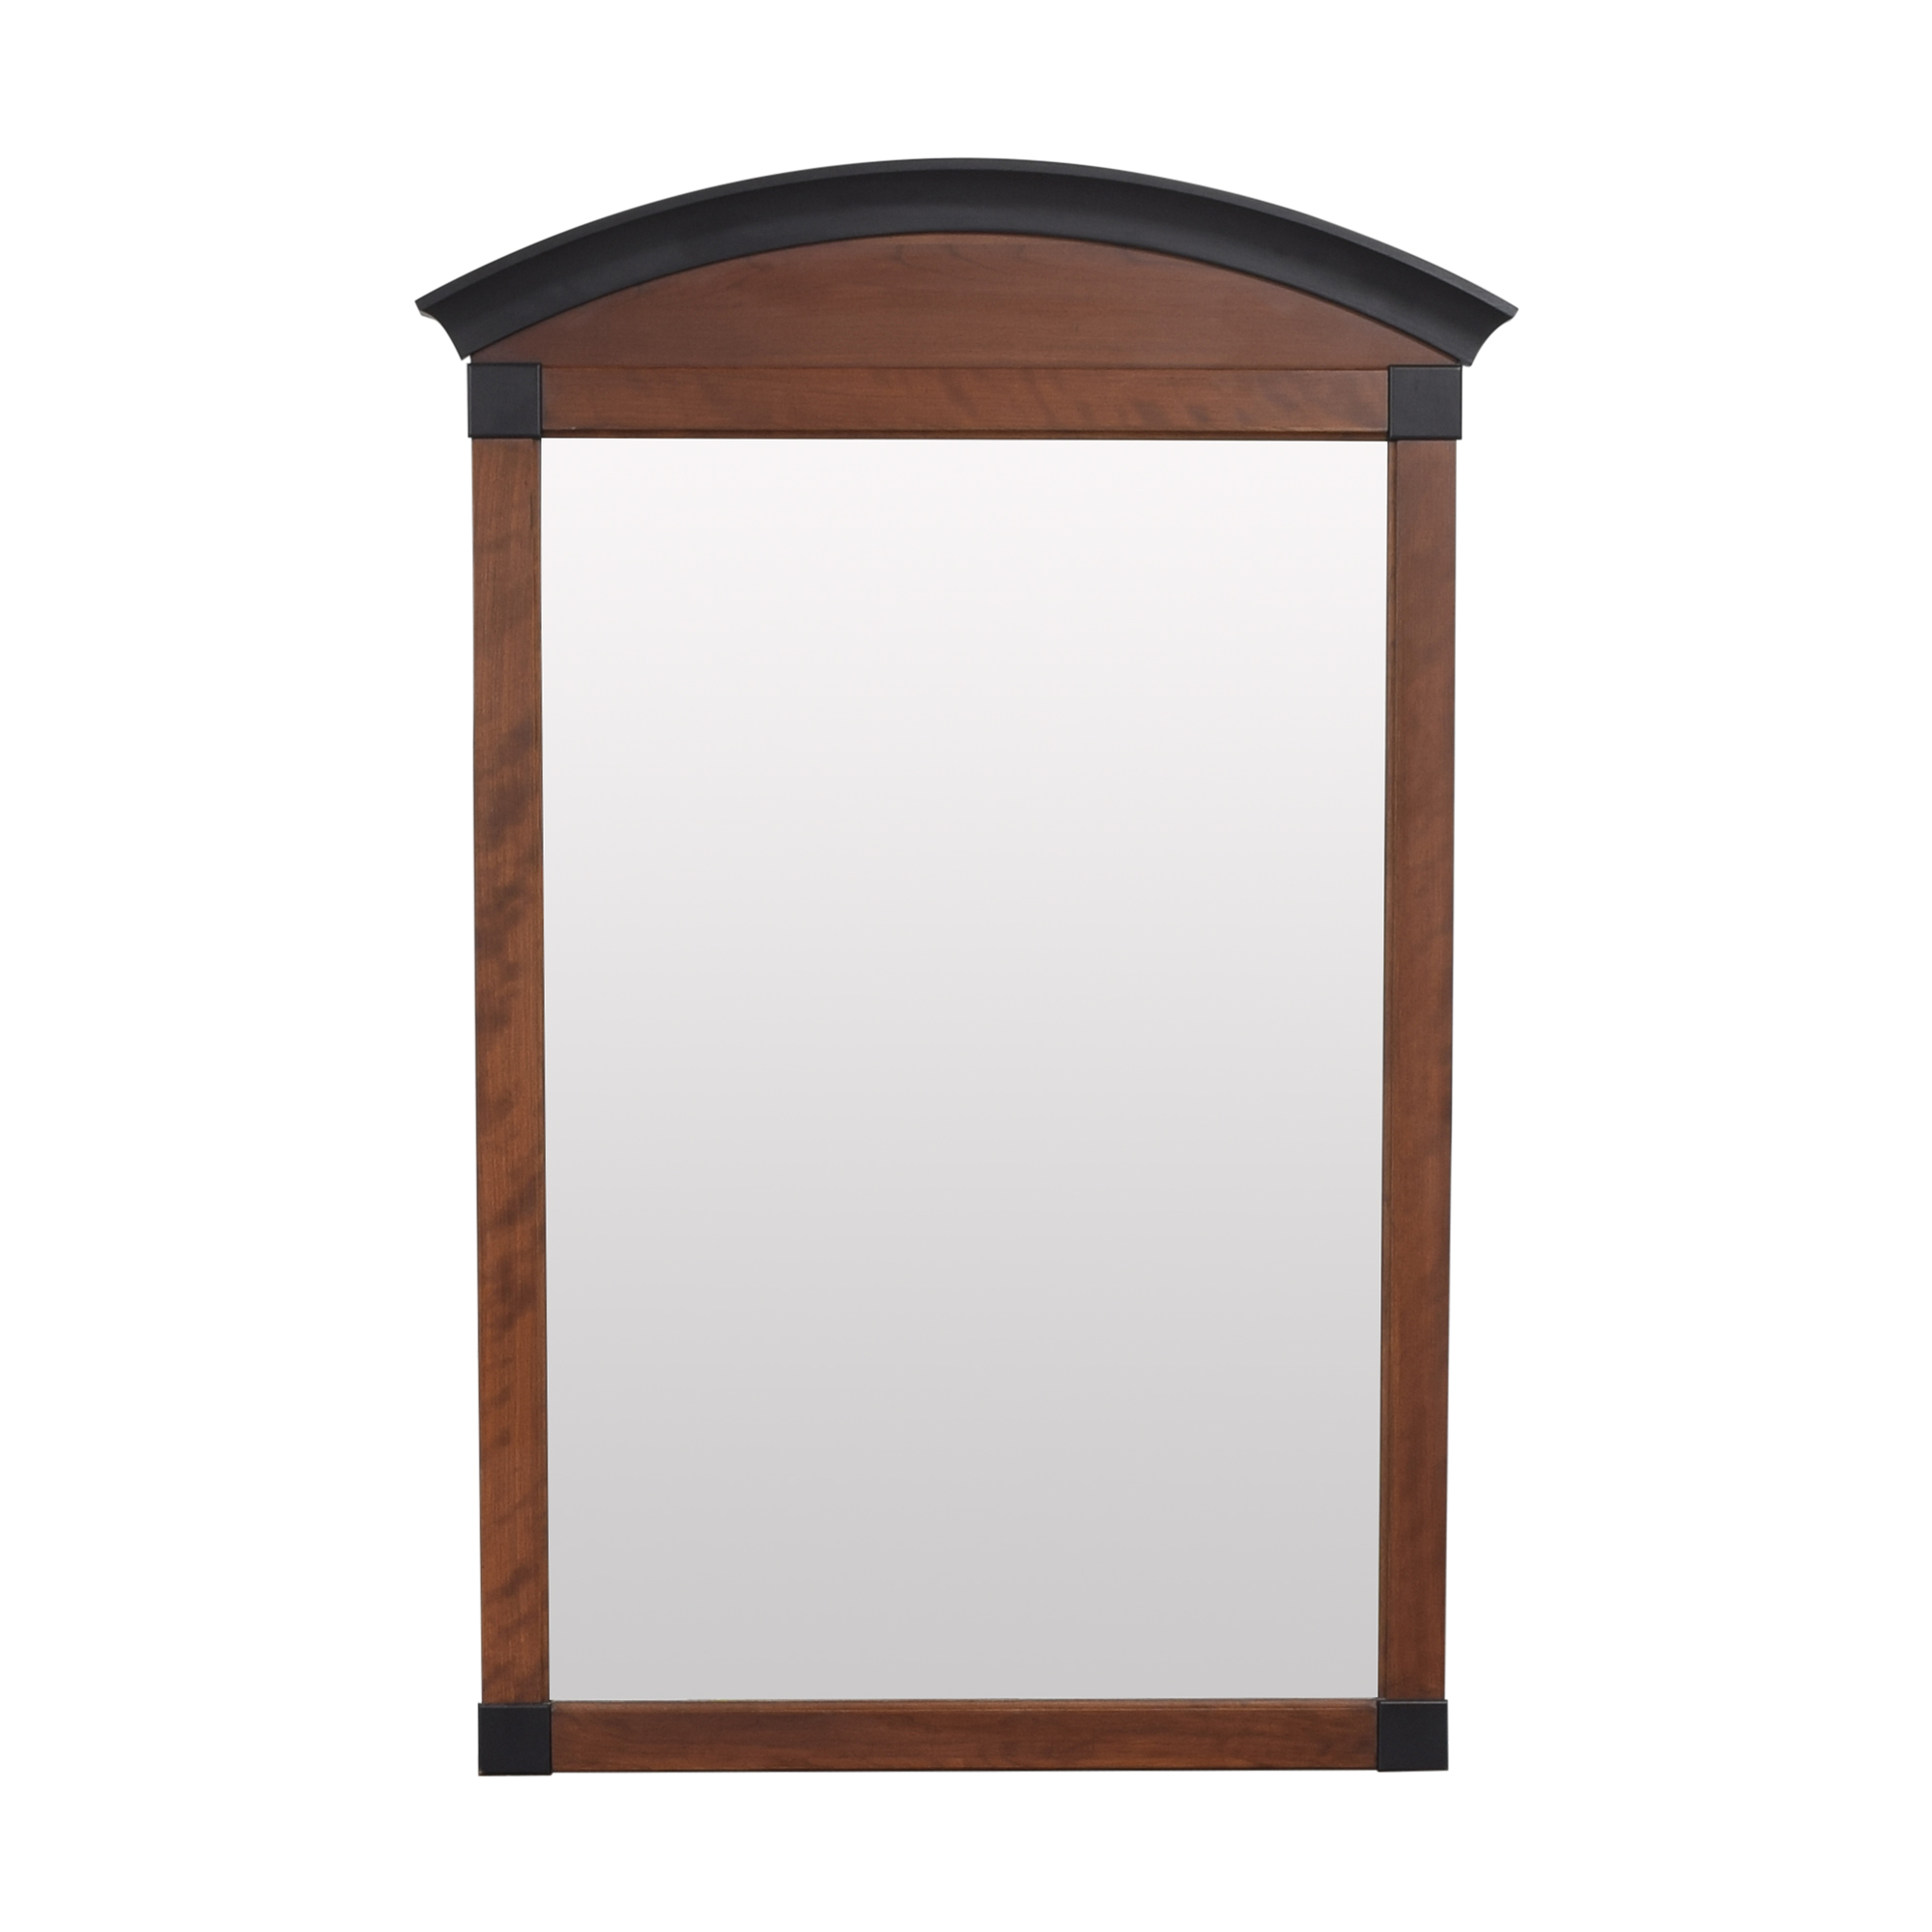 Ethan Allen Ethan Allen American Impressions Arched Mirror Mirrors